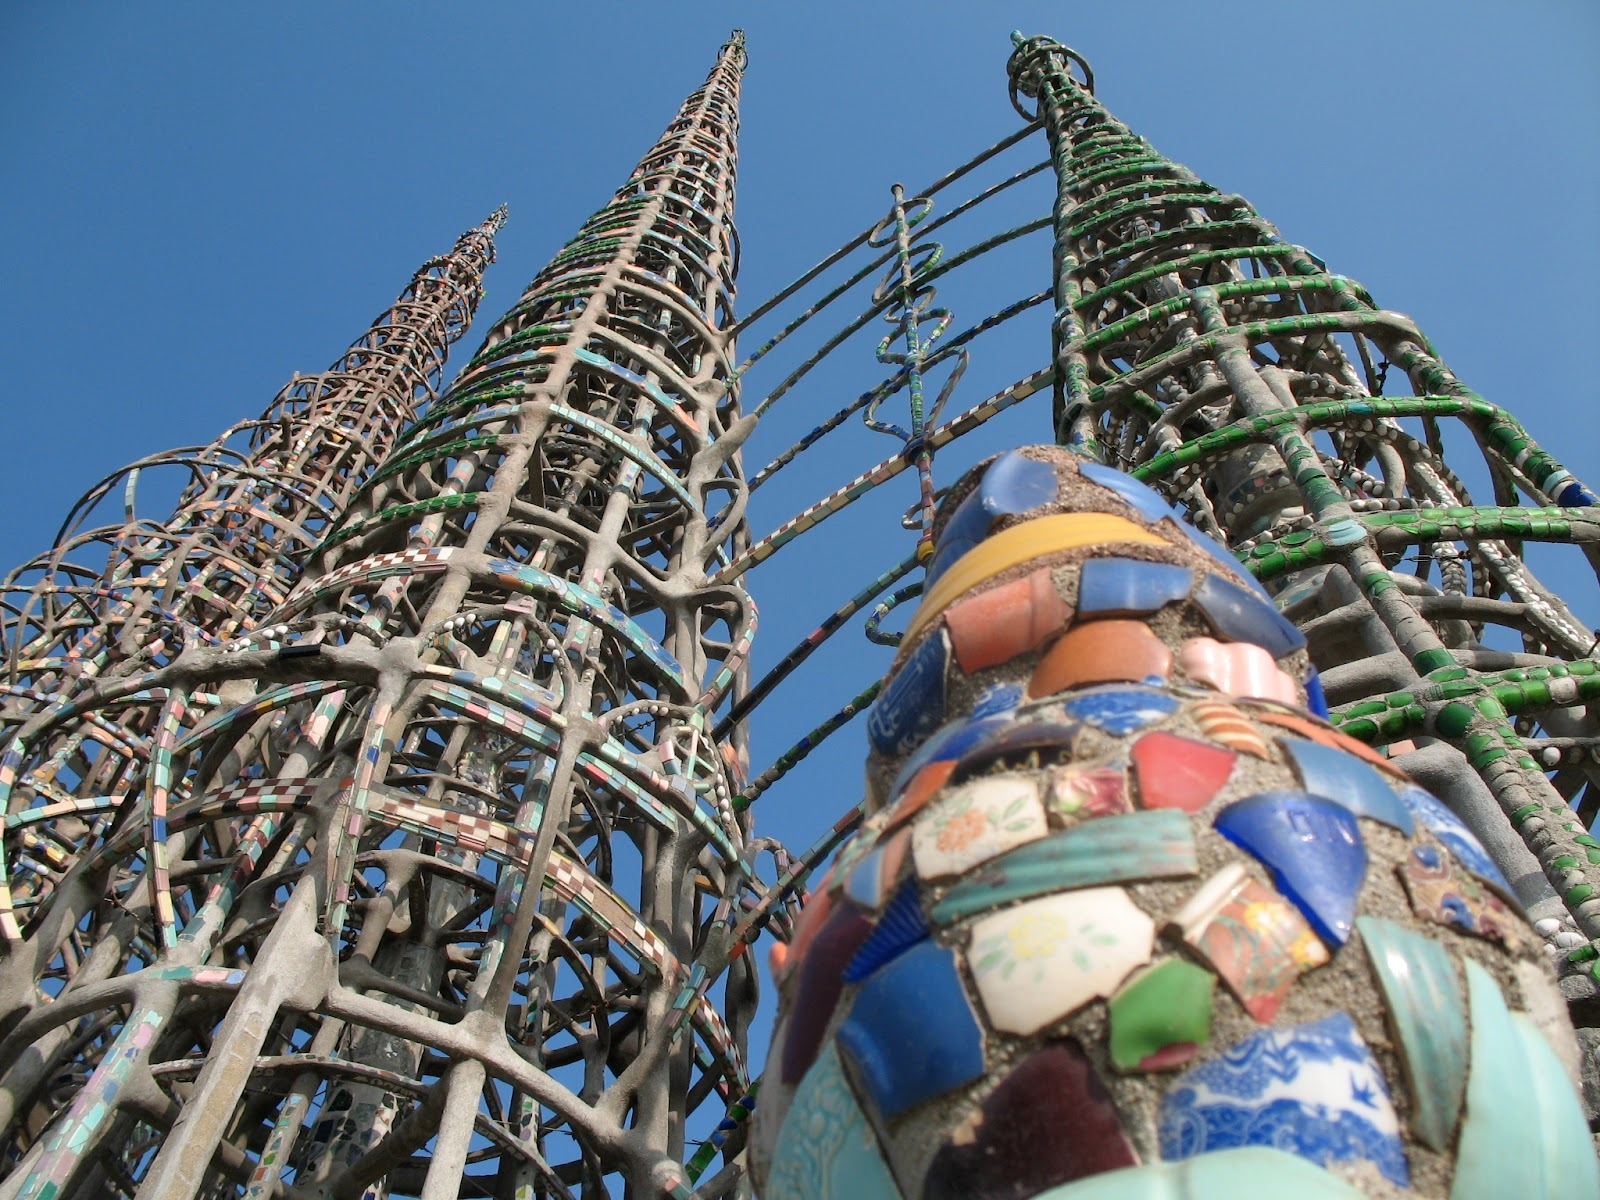 Watts Towers in the LA Times today